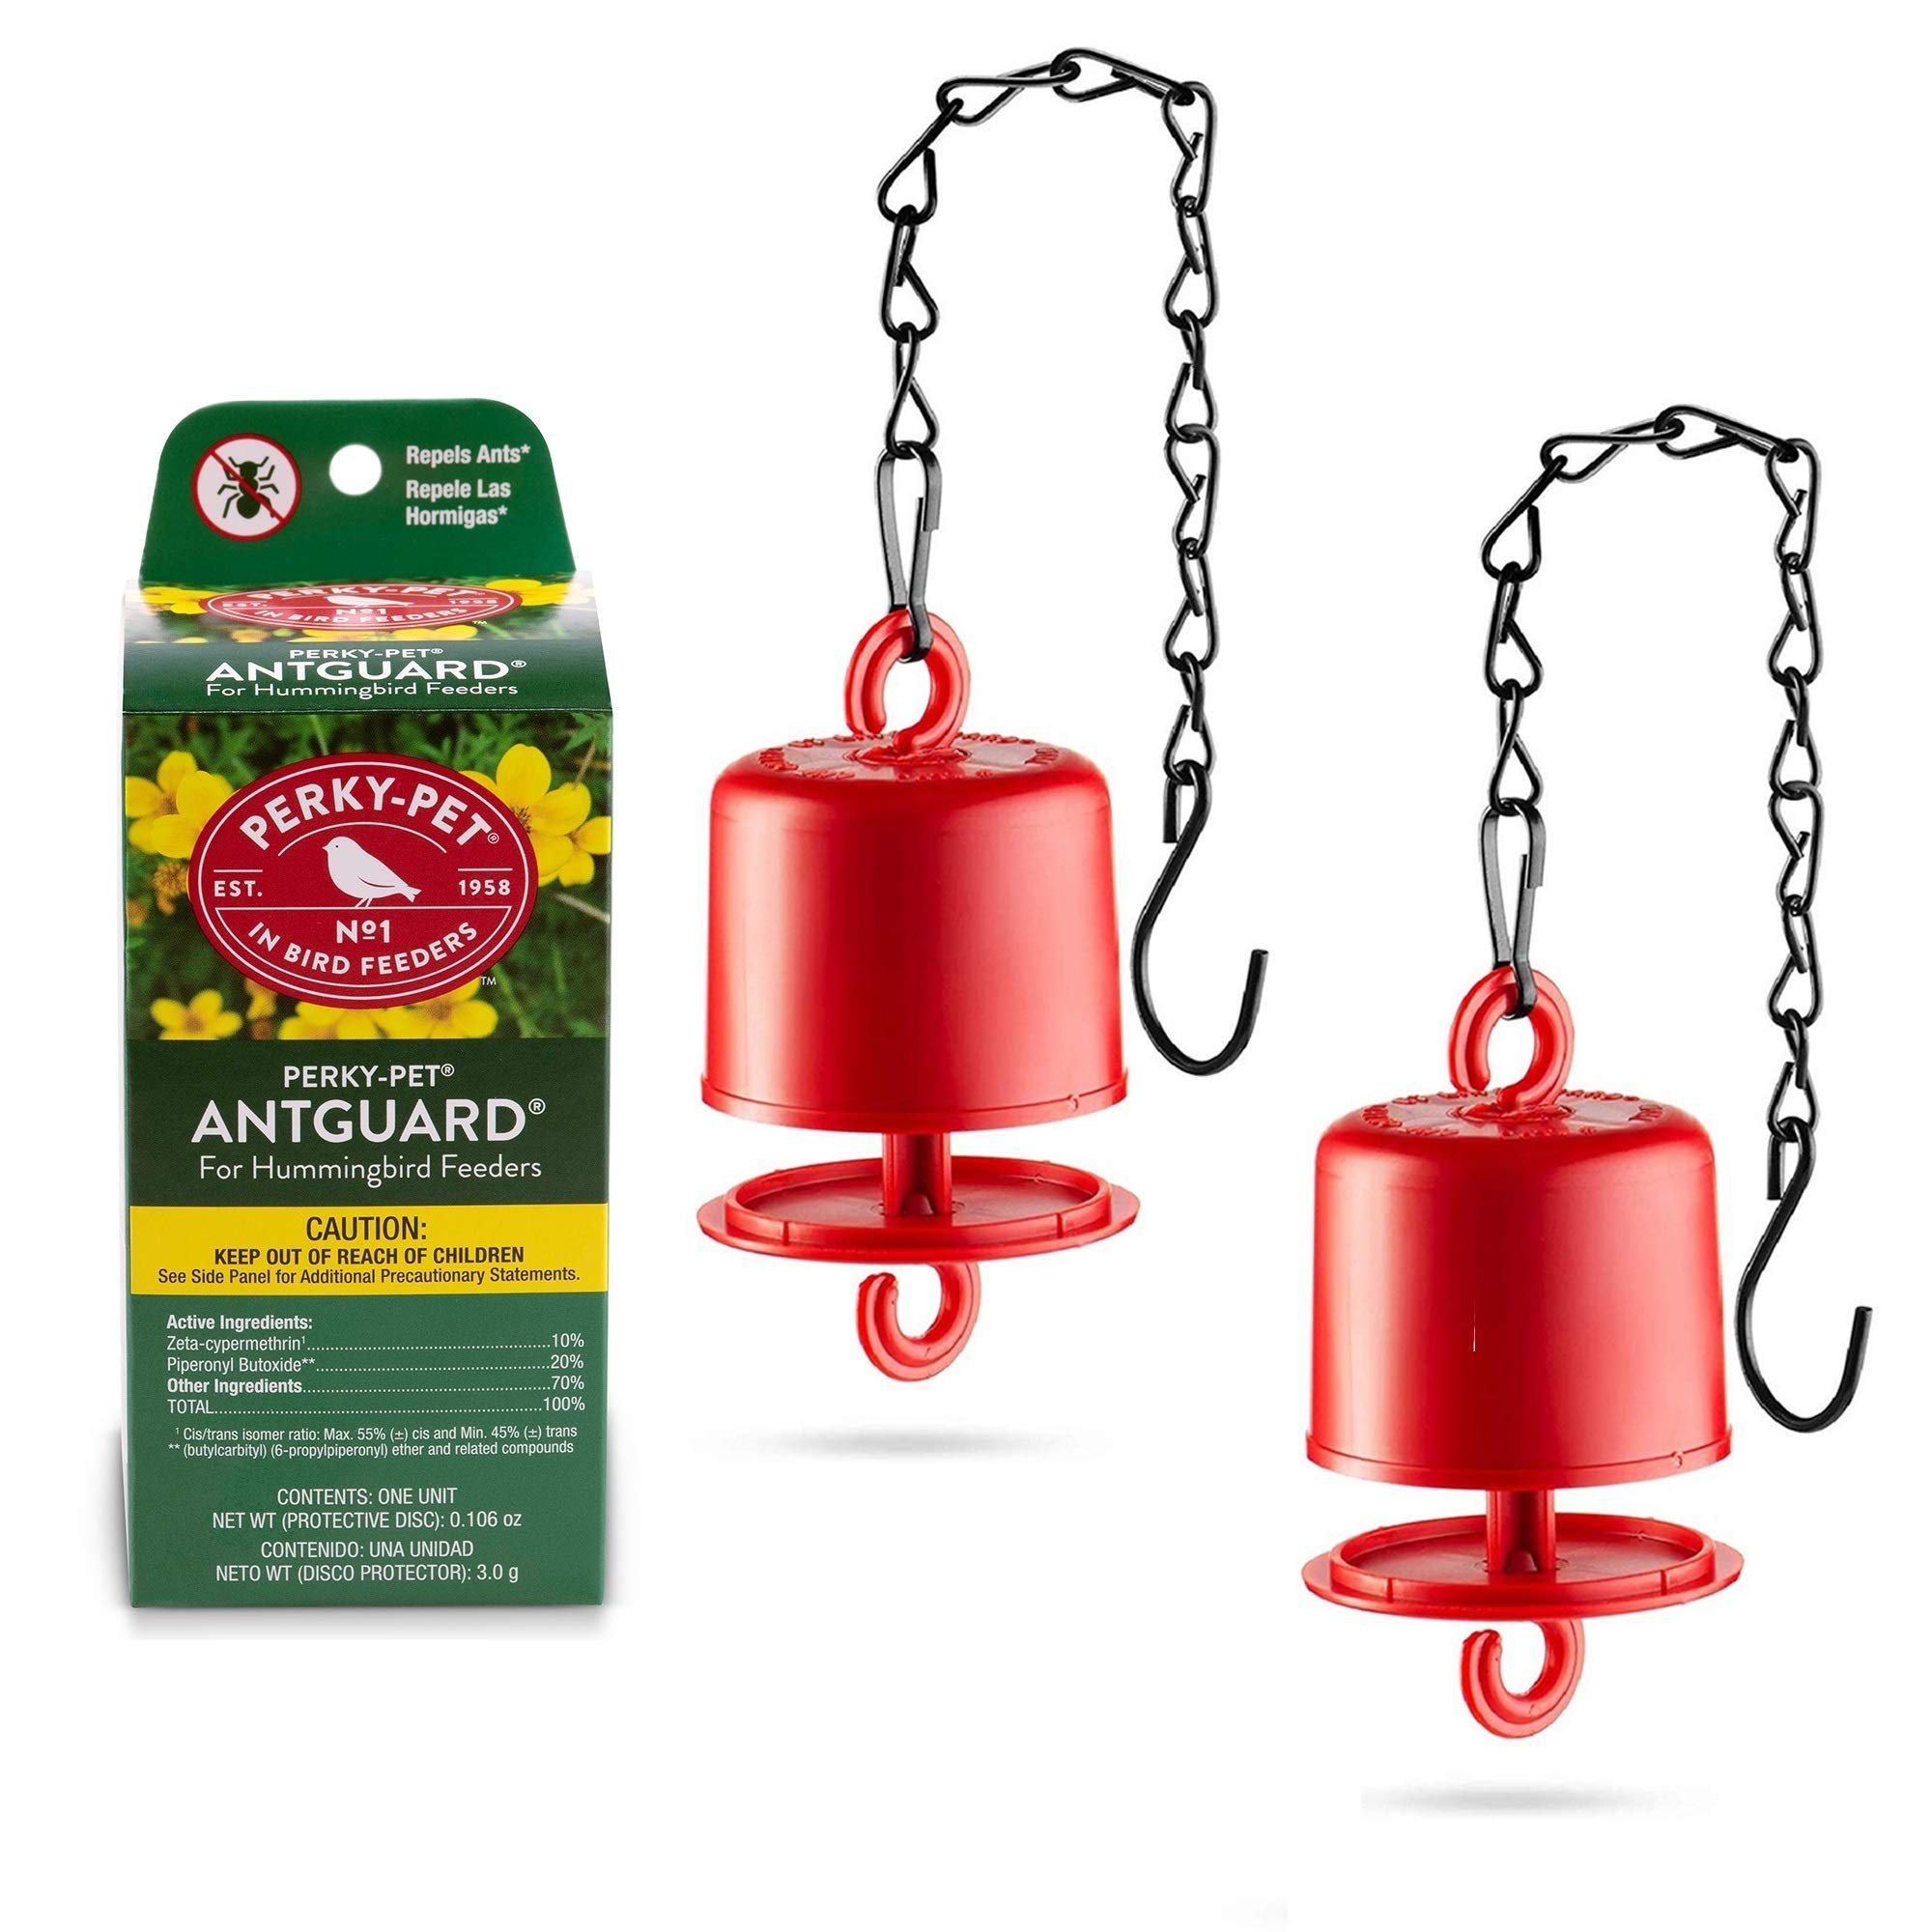 Perky Pet Ant Guard - Repels Ants, Bundled With Sewanta Bird feeder Chain [ 2 Pack ]